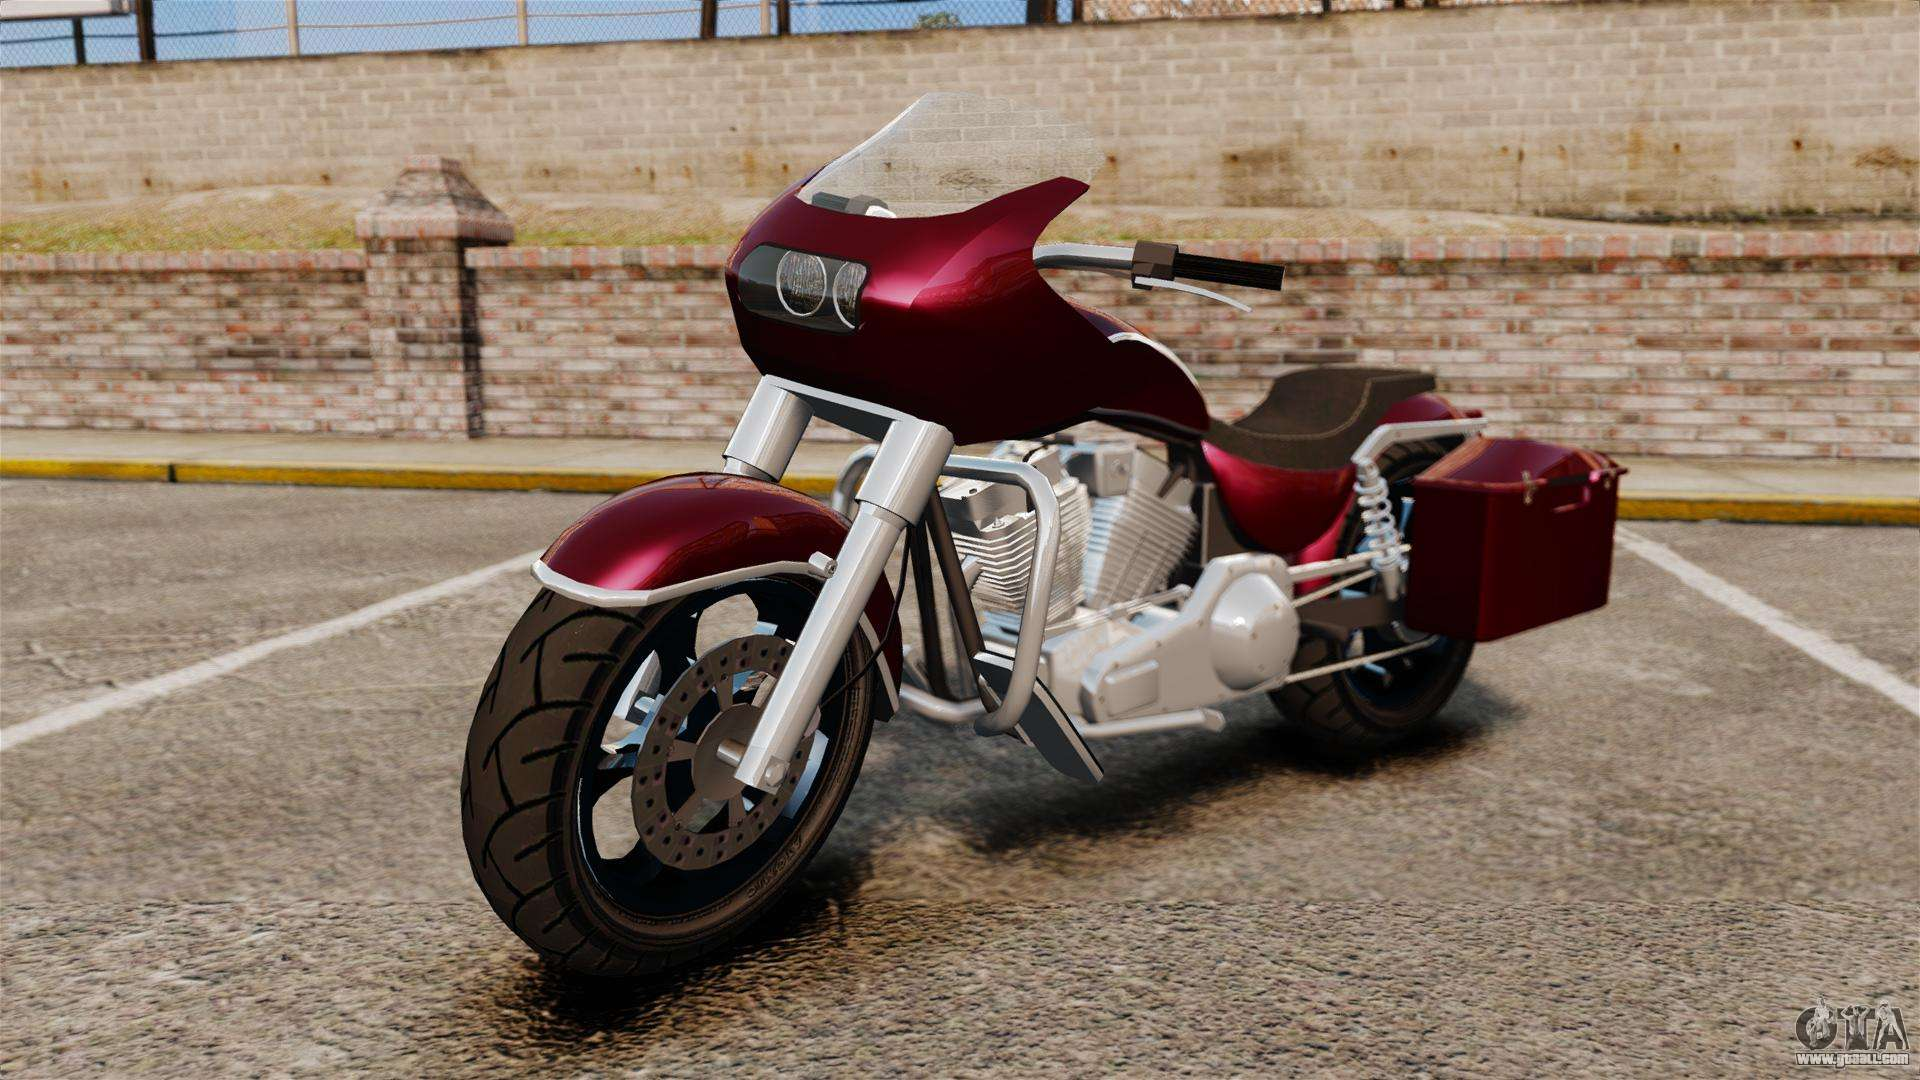 Gta V Western Bagger | www.pixshark.com - Images Galleries ...